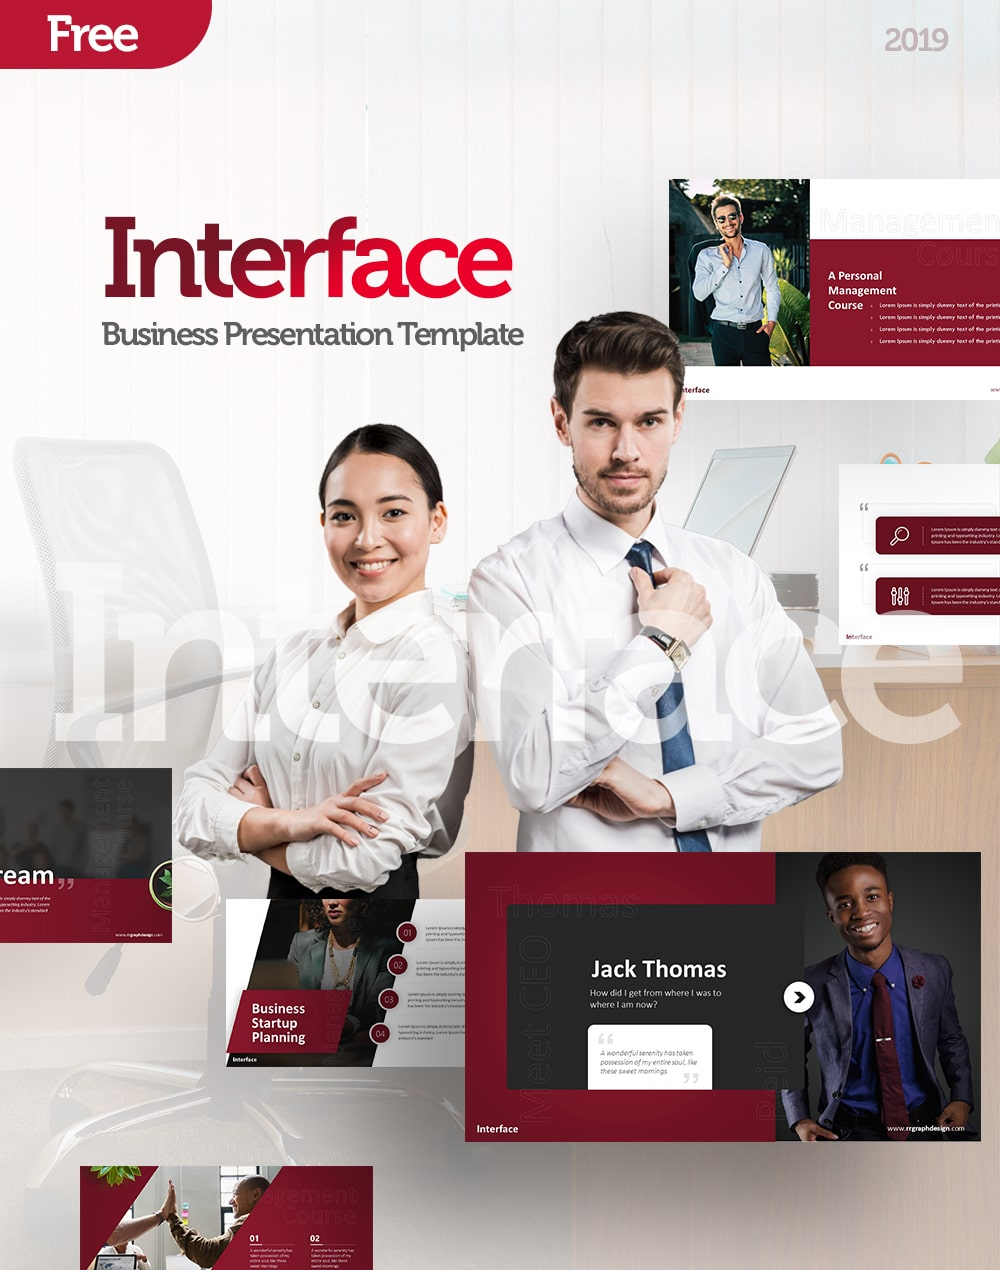 Free Interface Business PowerPoint